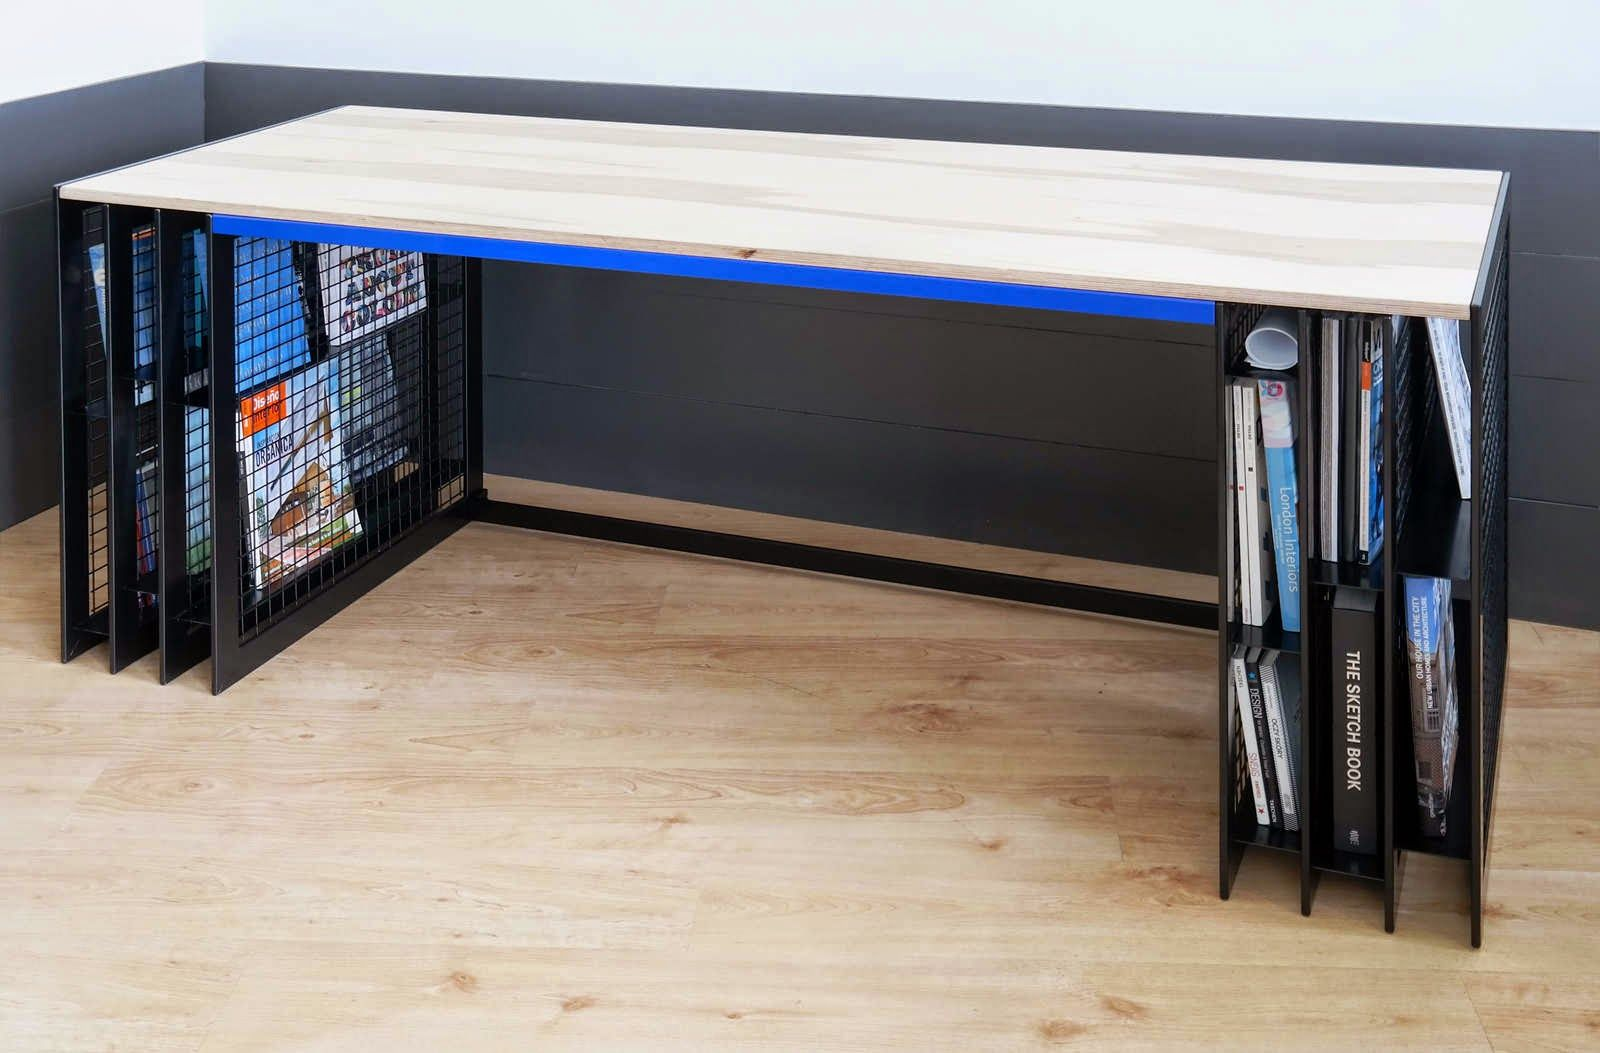 You know you want one of these the bookdesk